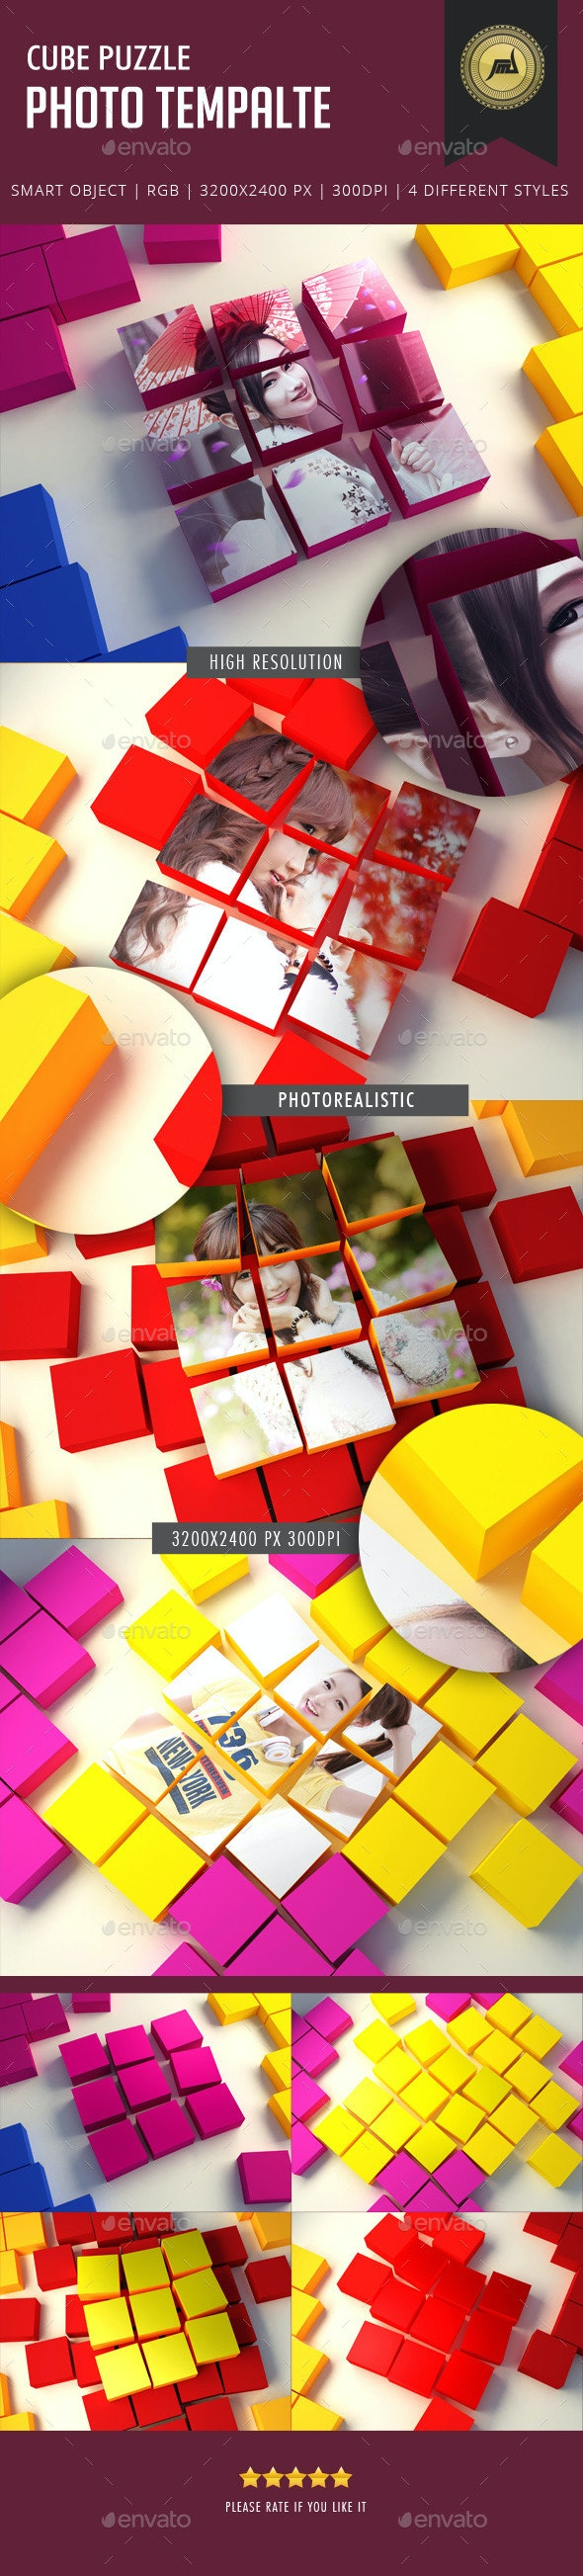 Cube Puzzle Photo Template - Photo Templates Graphics